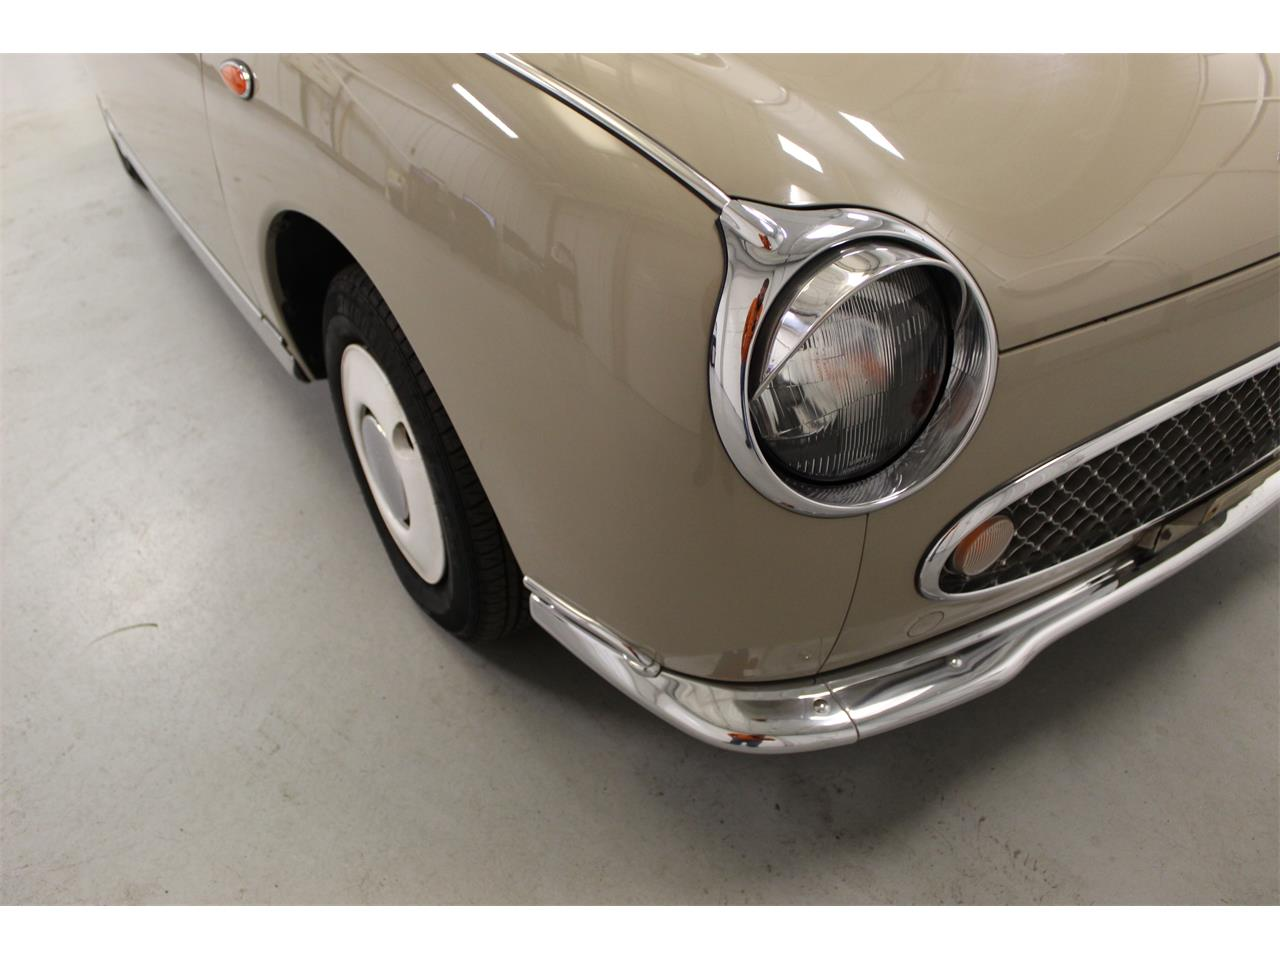 1991 Nissan Figaro for sale in Christiansburg, VA – photo 34